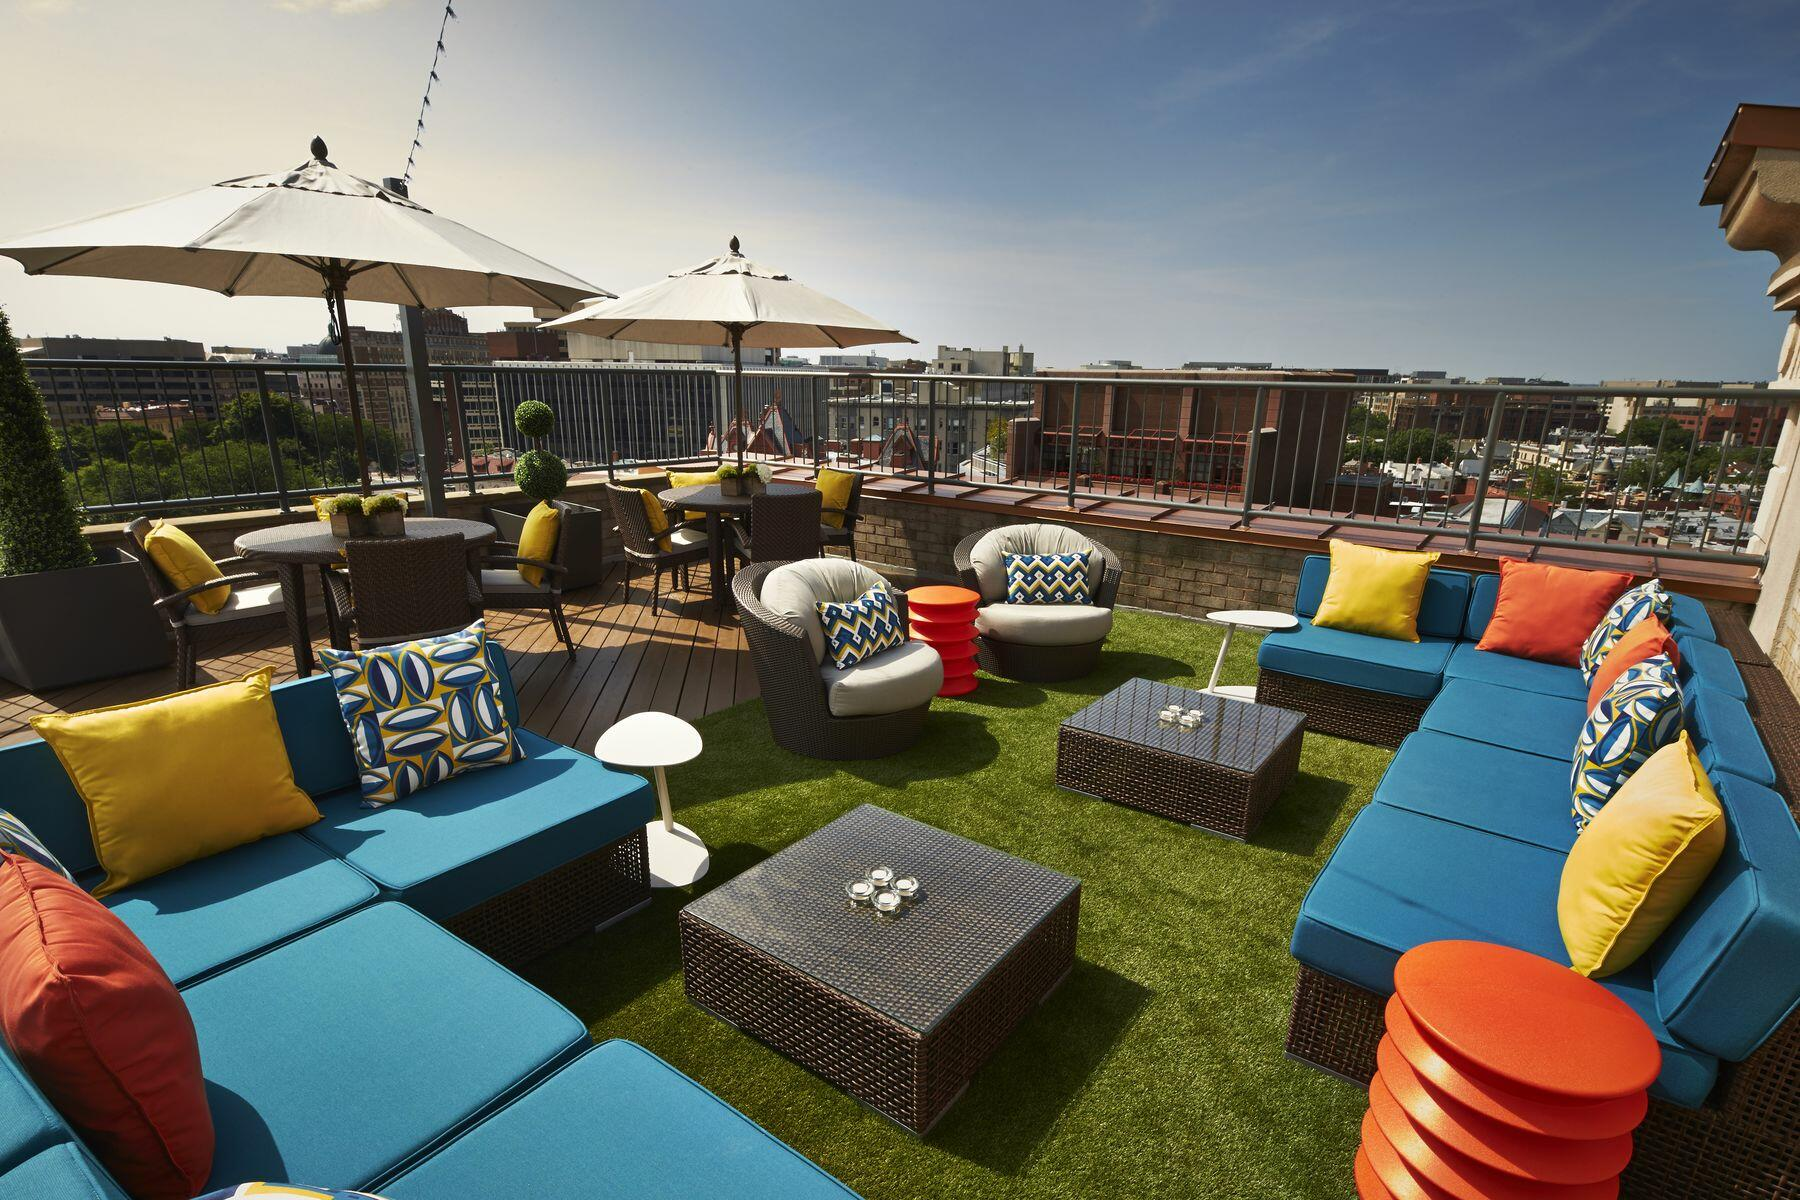 Seating at rooftop patio